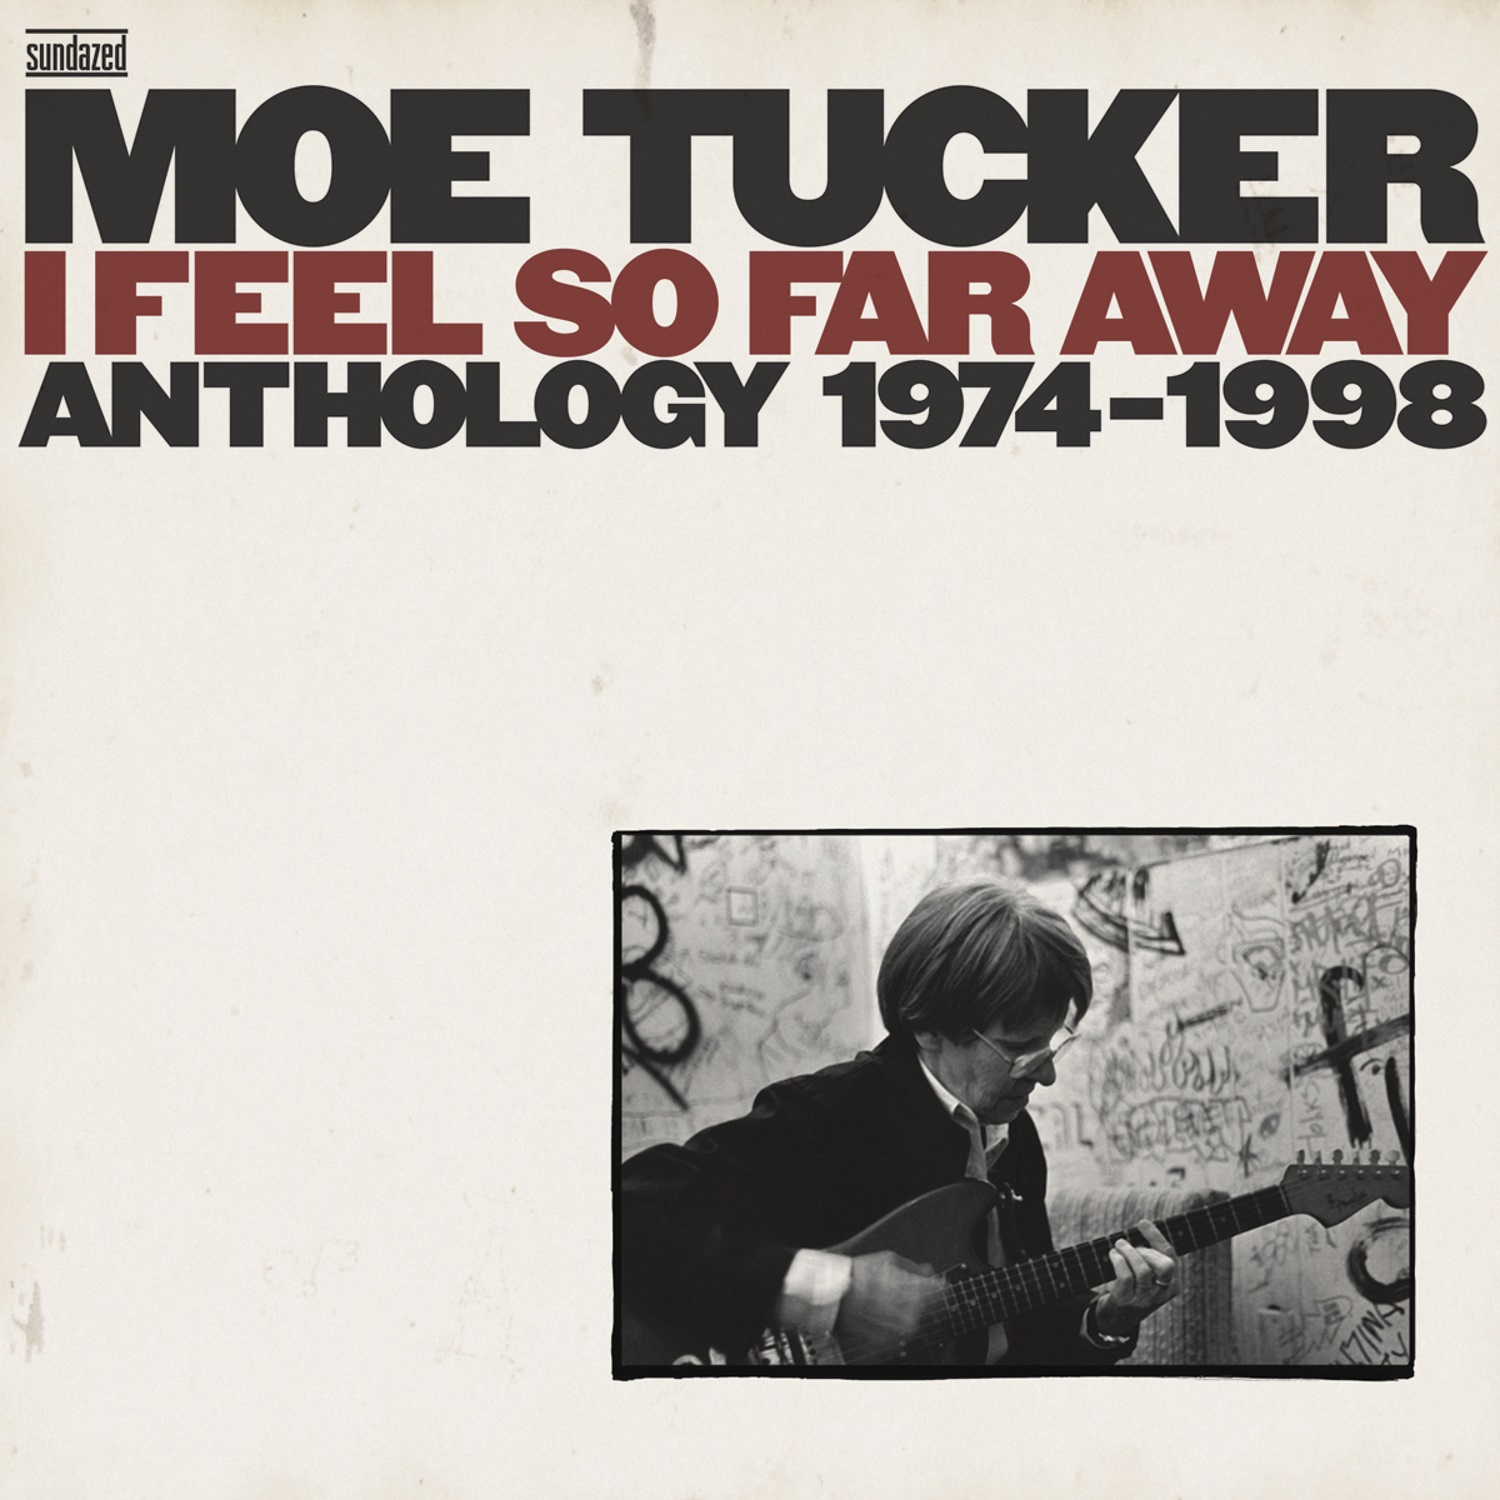 Tucker, Moe - I Feel So Far Away: Anthology 1974-1998 2-CD Set